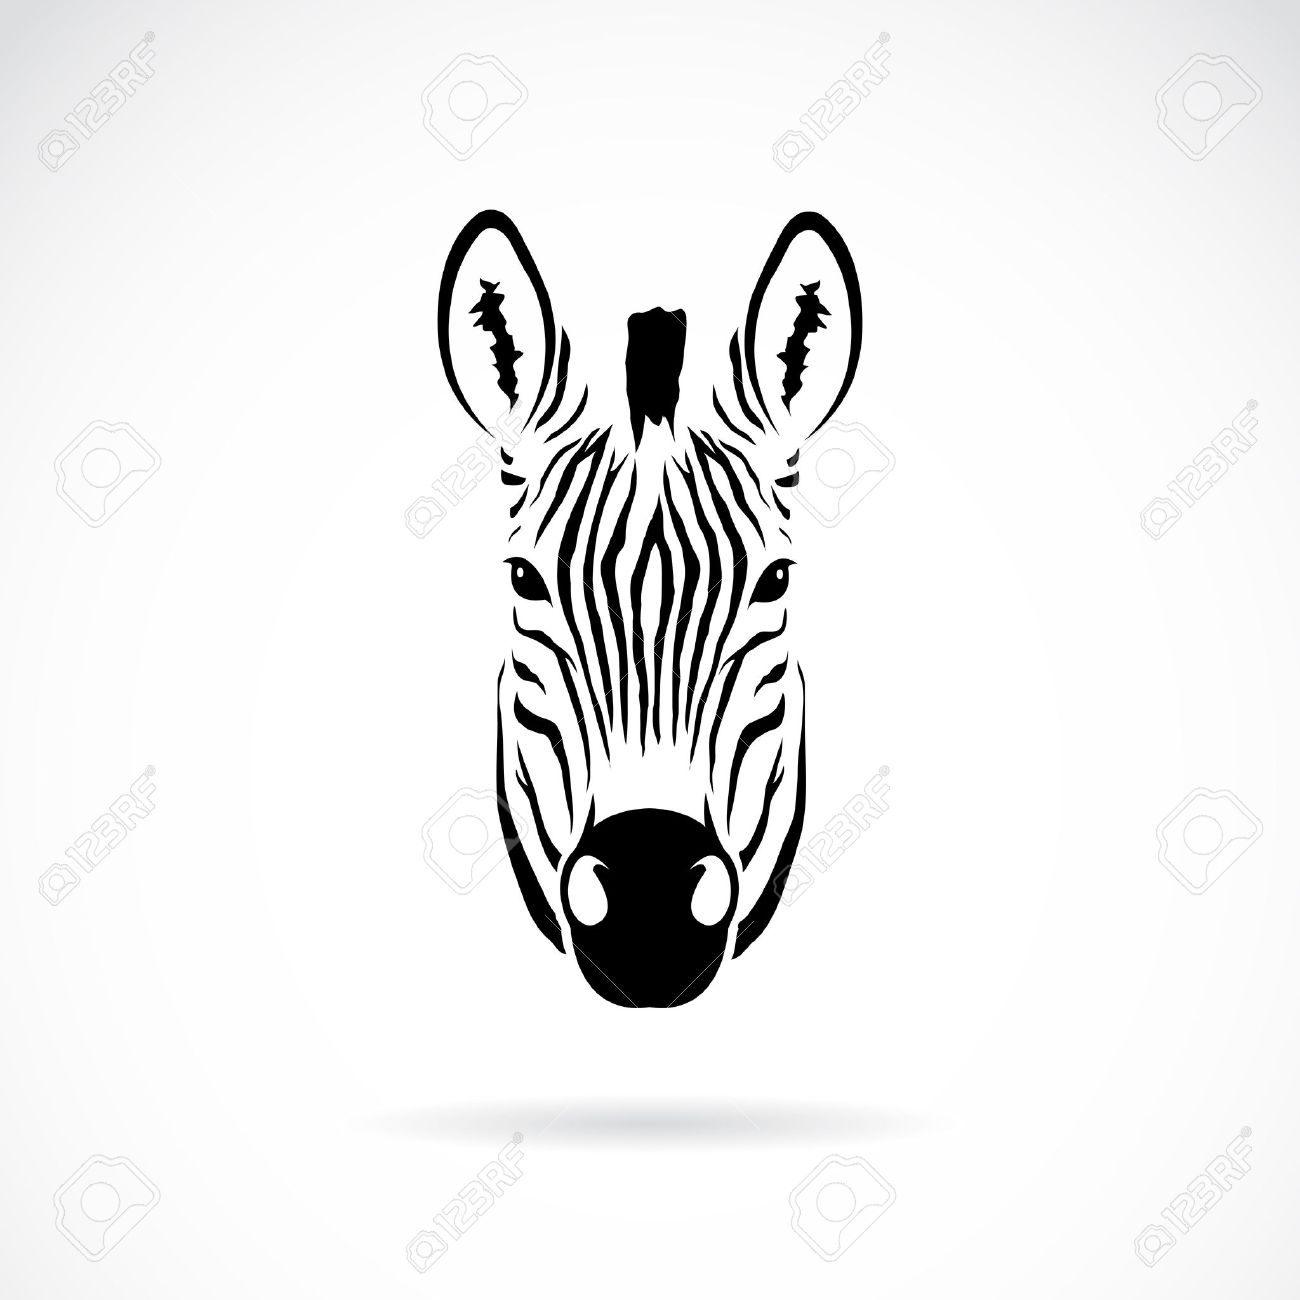 vector image of an zebra head on white background royalty free